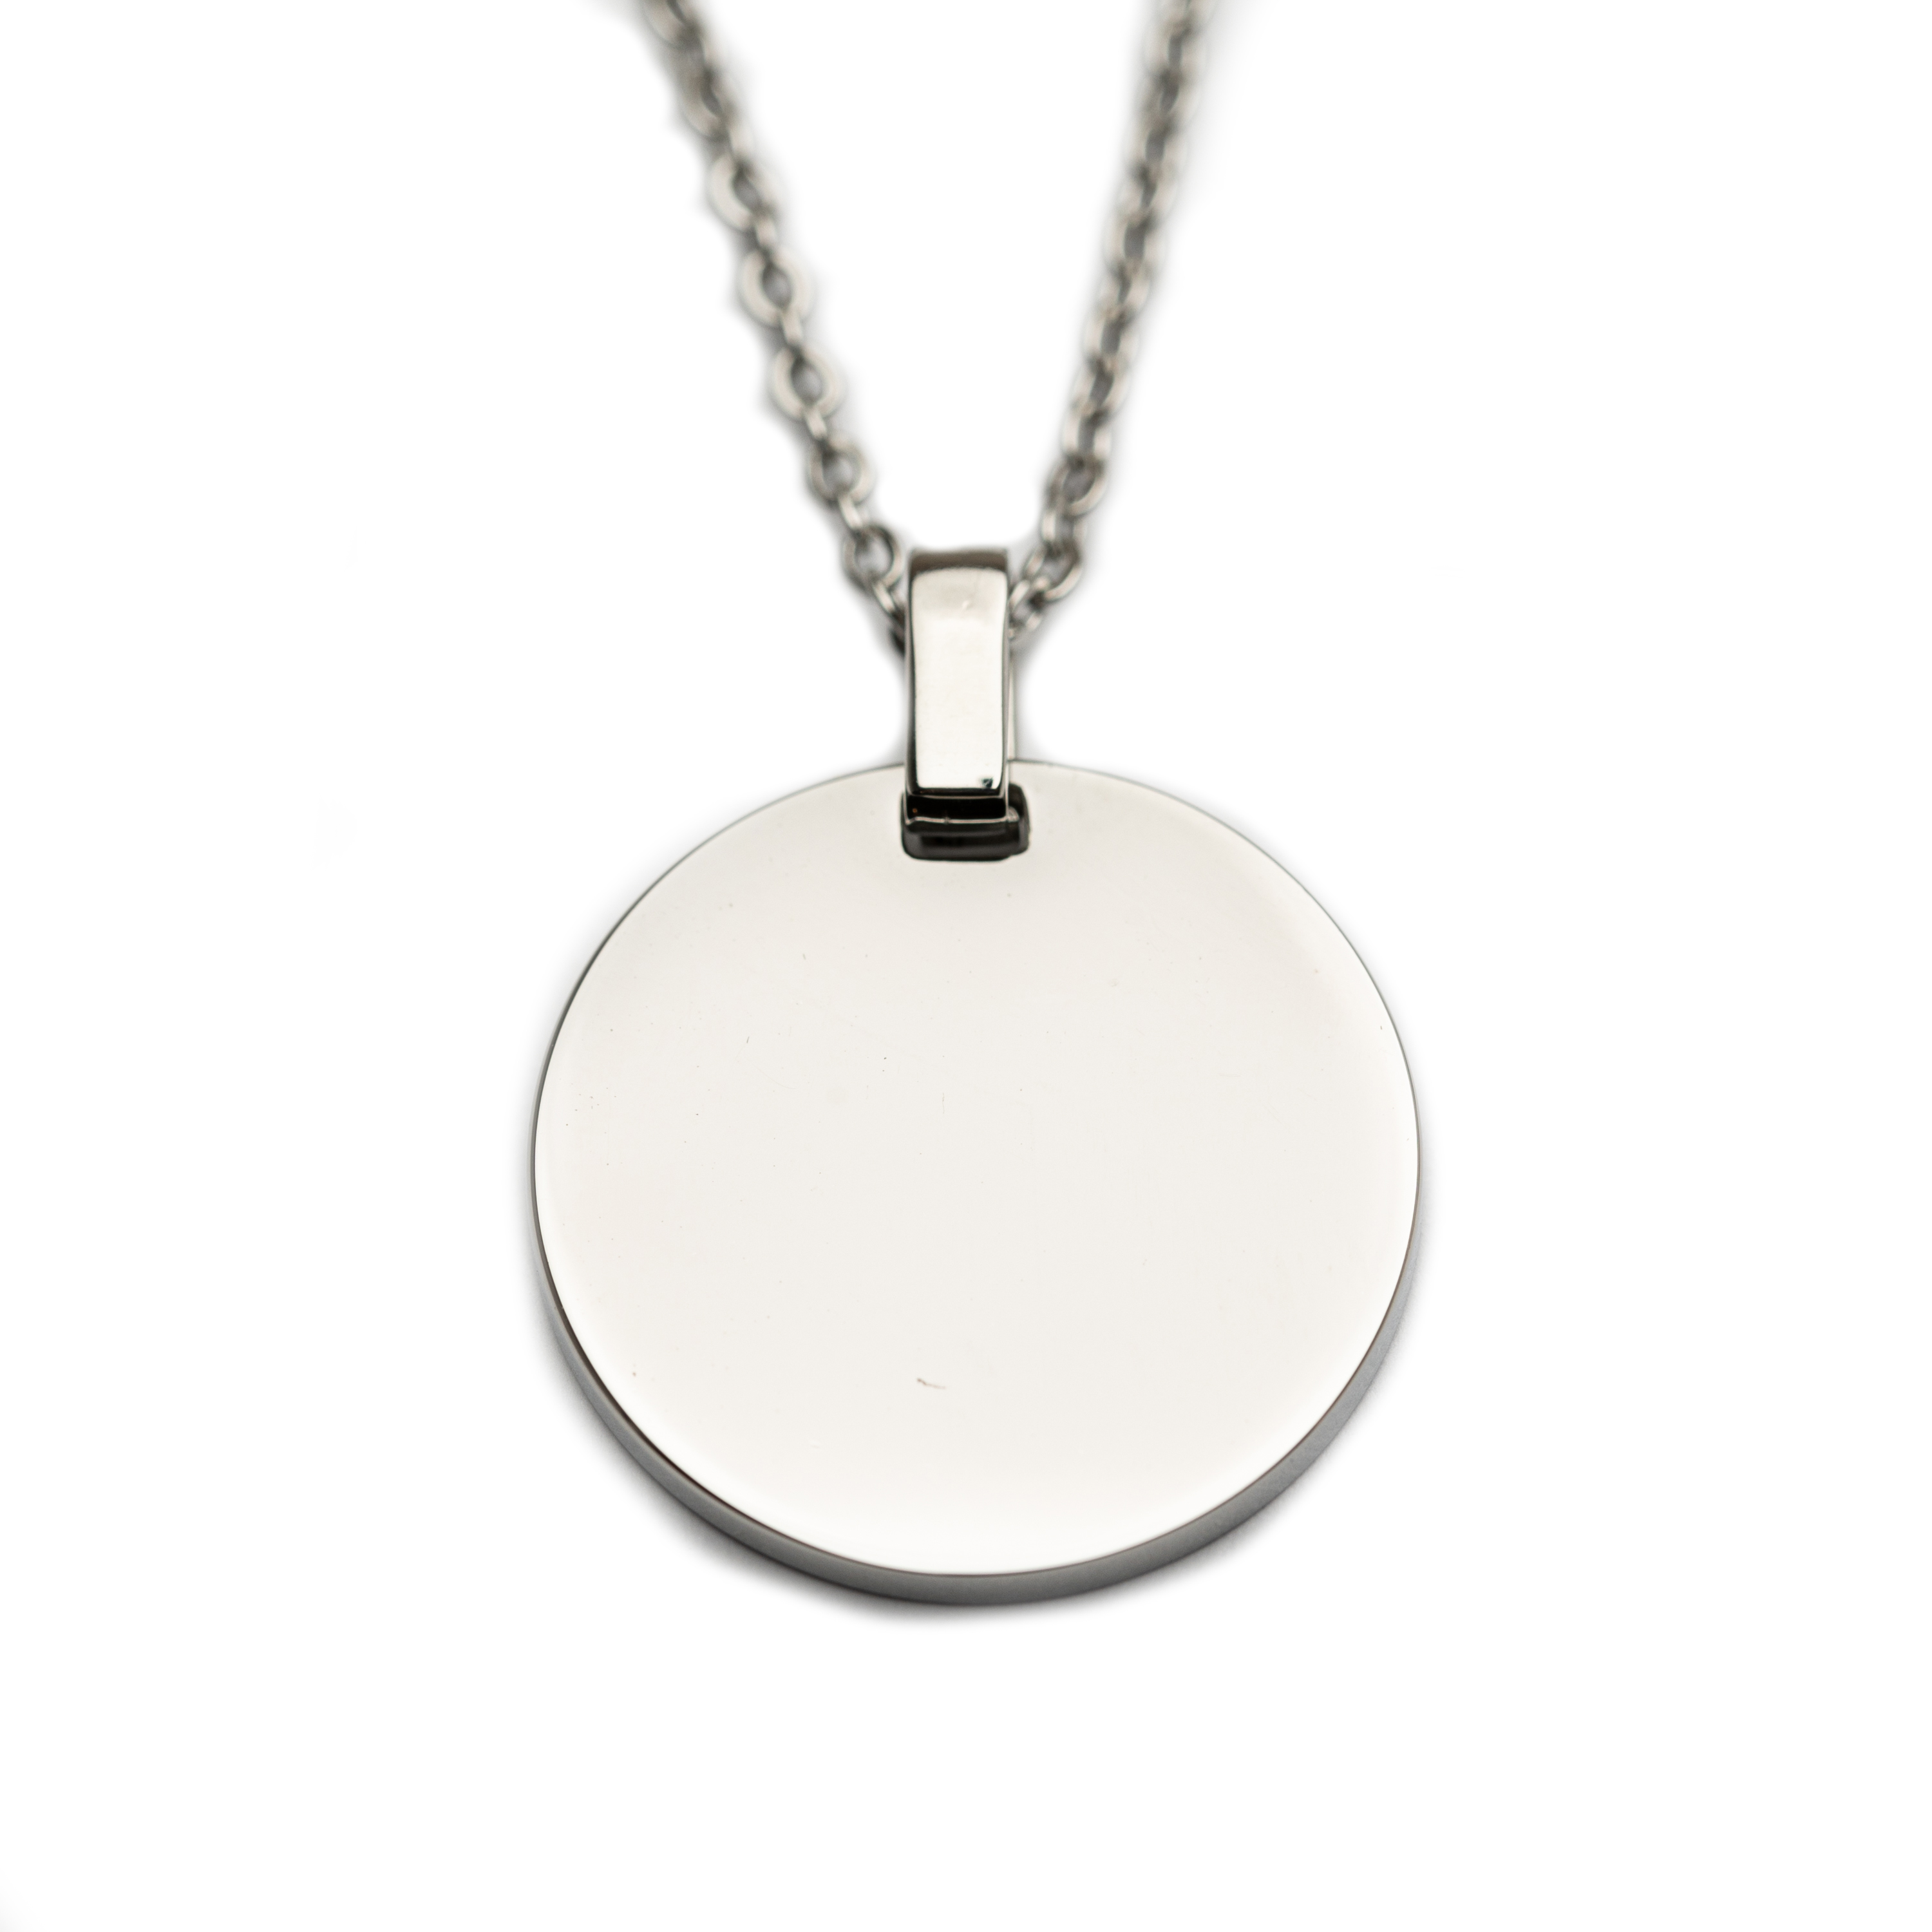 Men's Steel Necklace With Pendant.